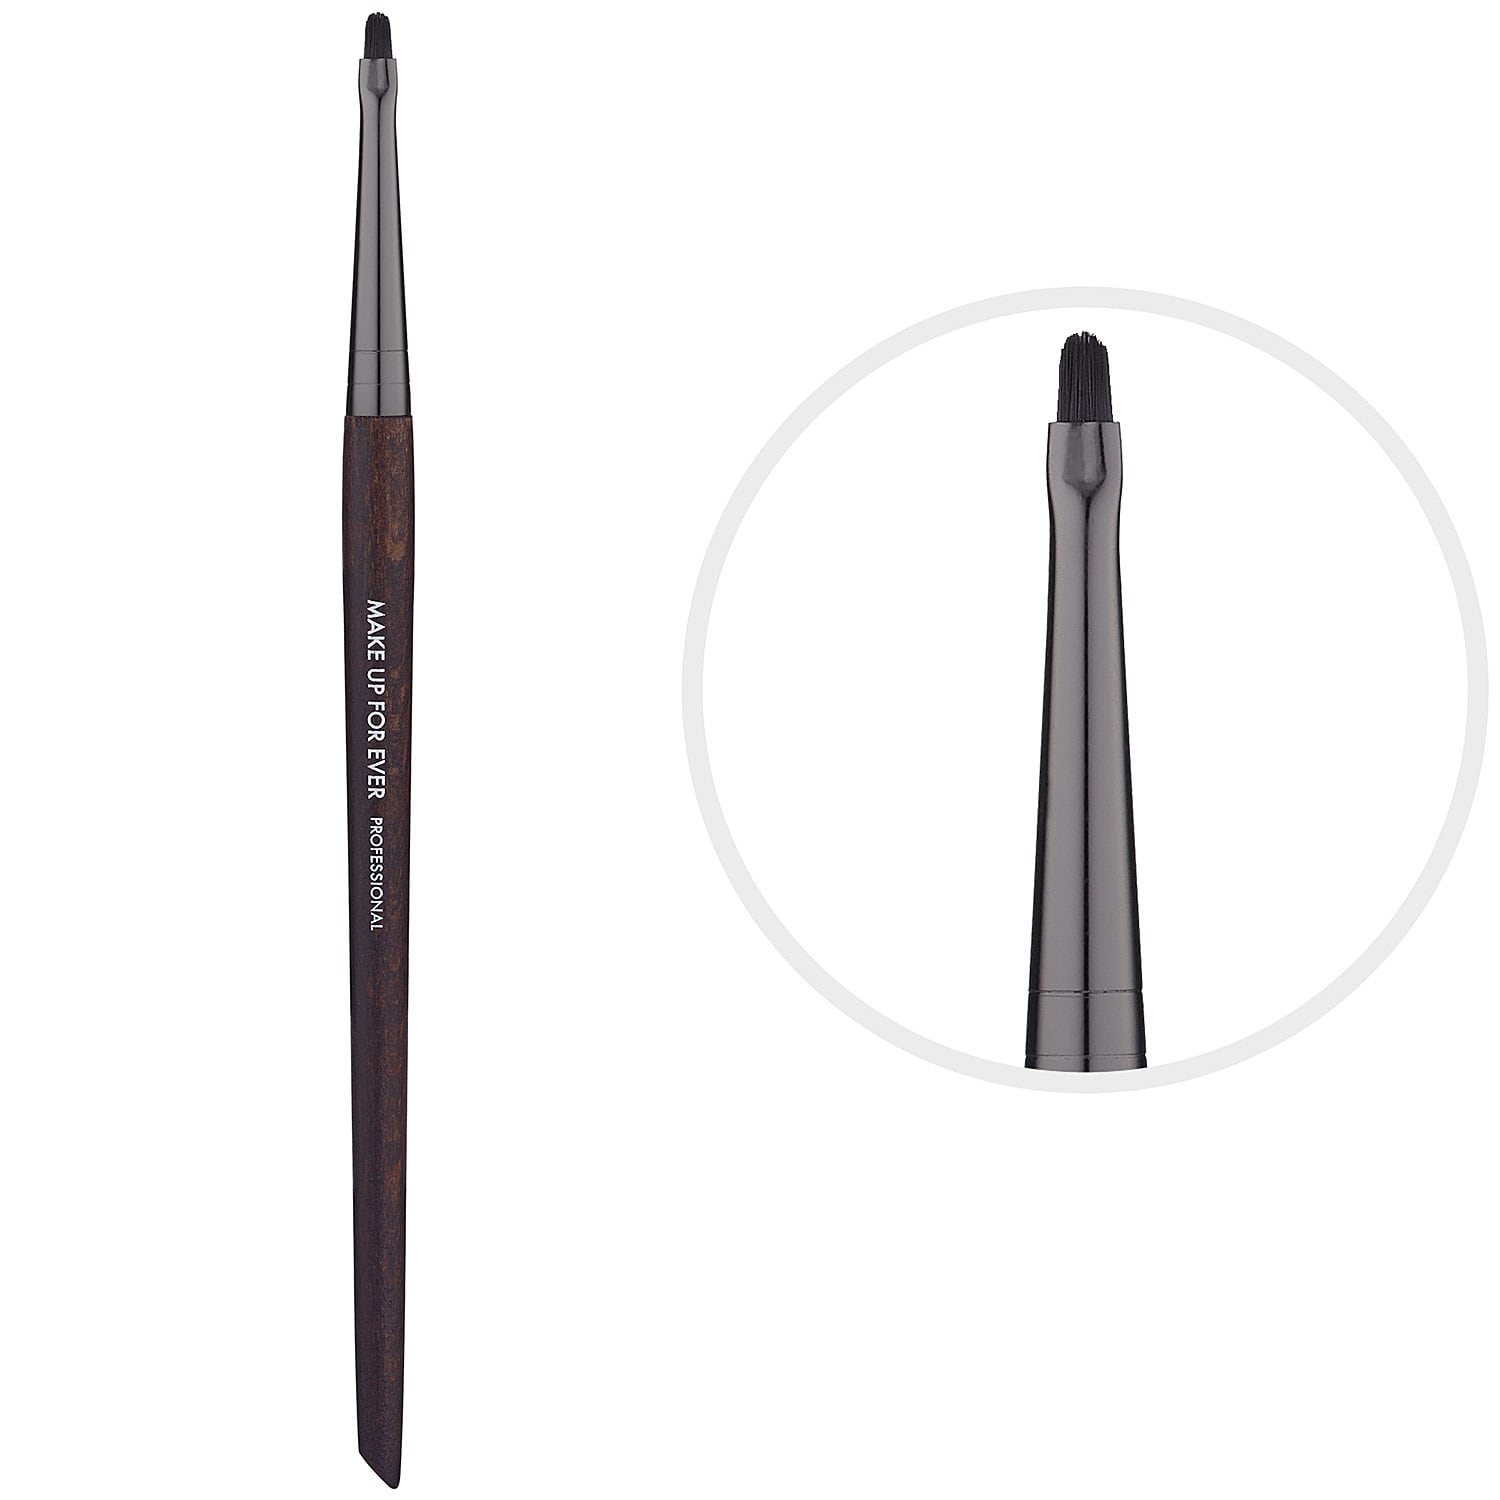 258 Large Precision Eyeliner Brush